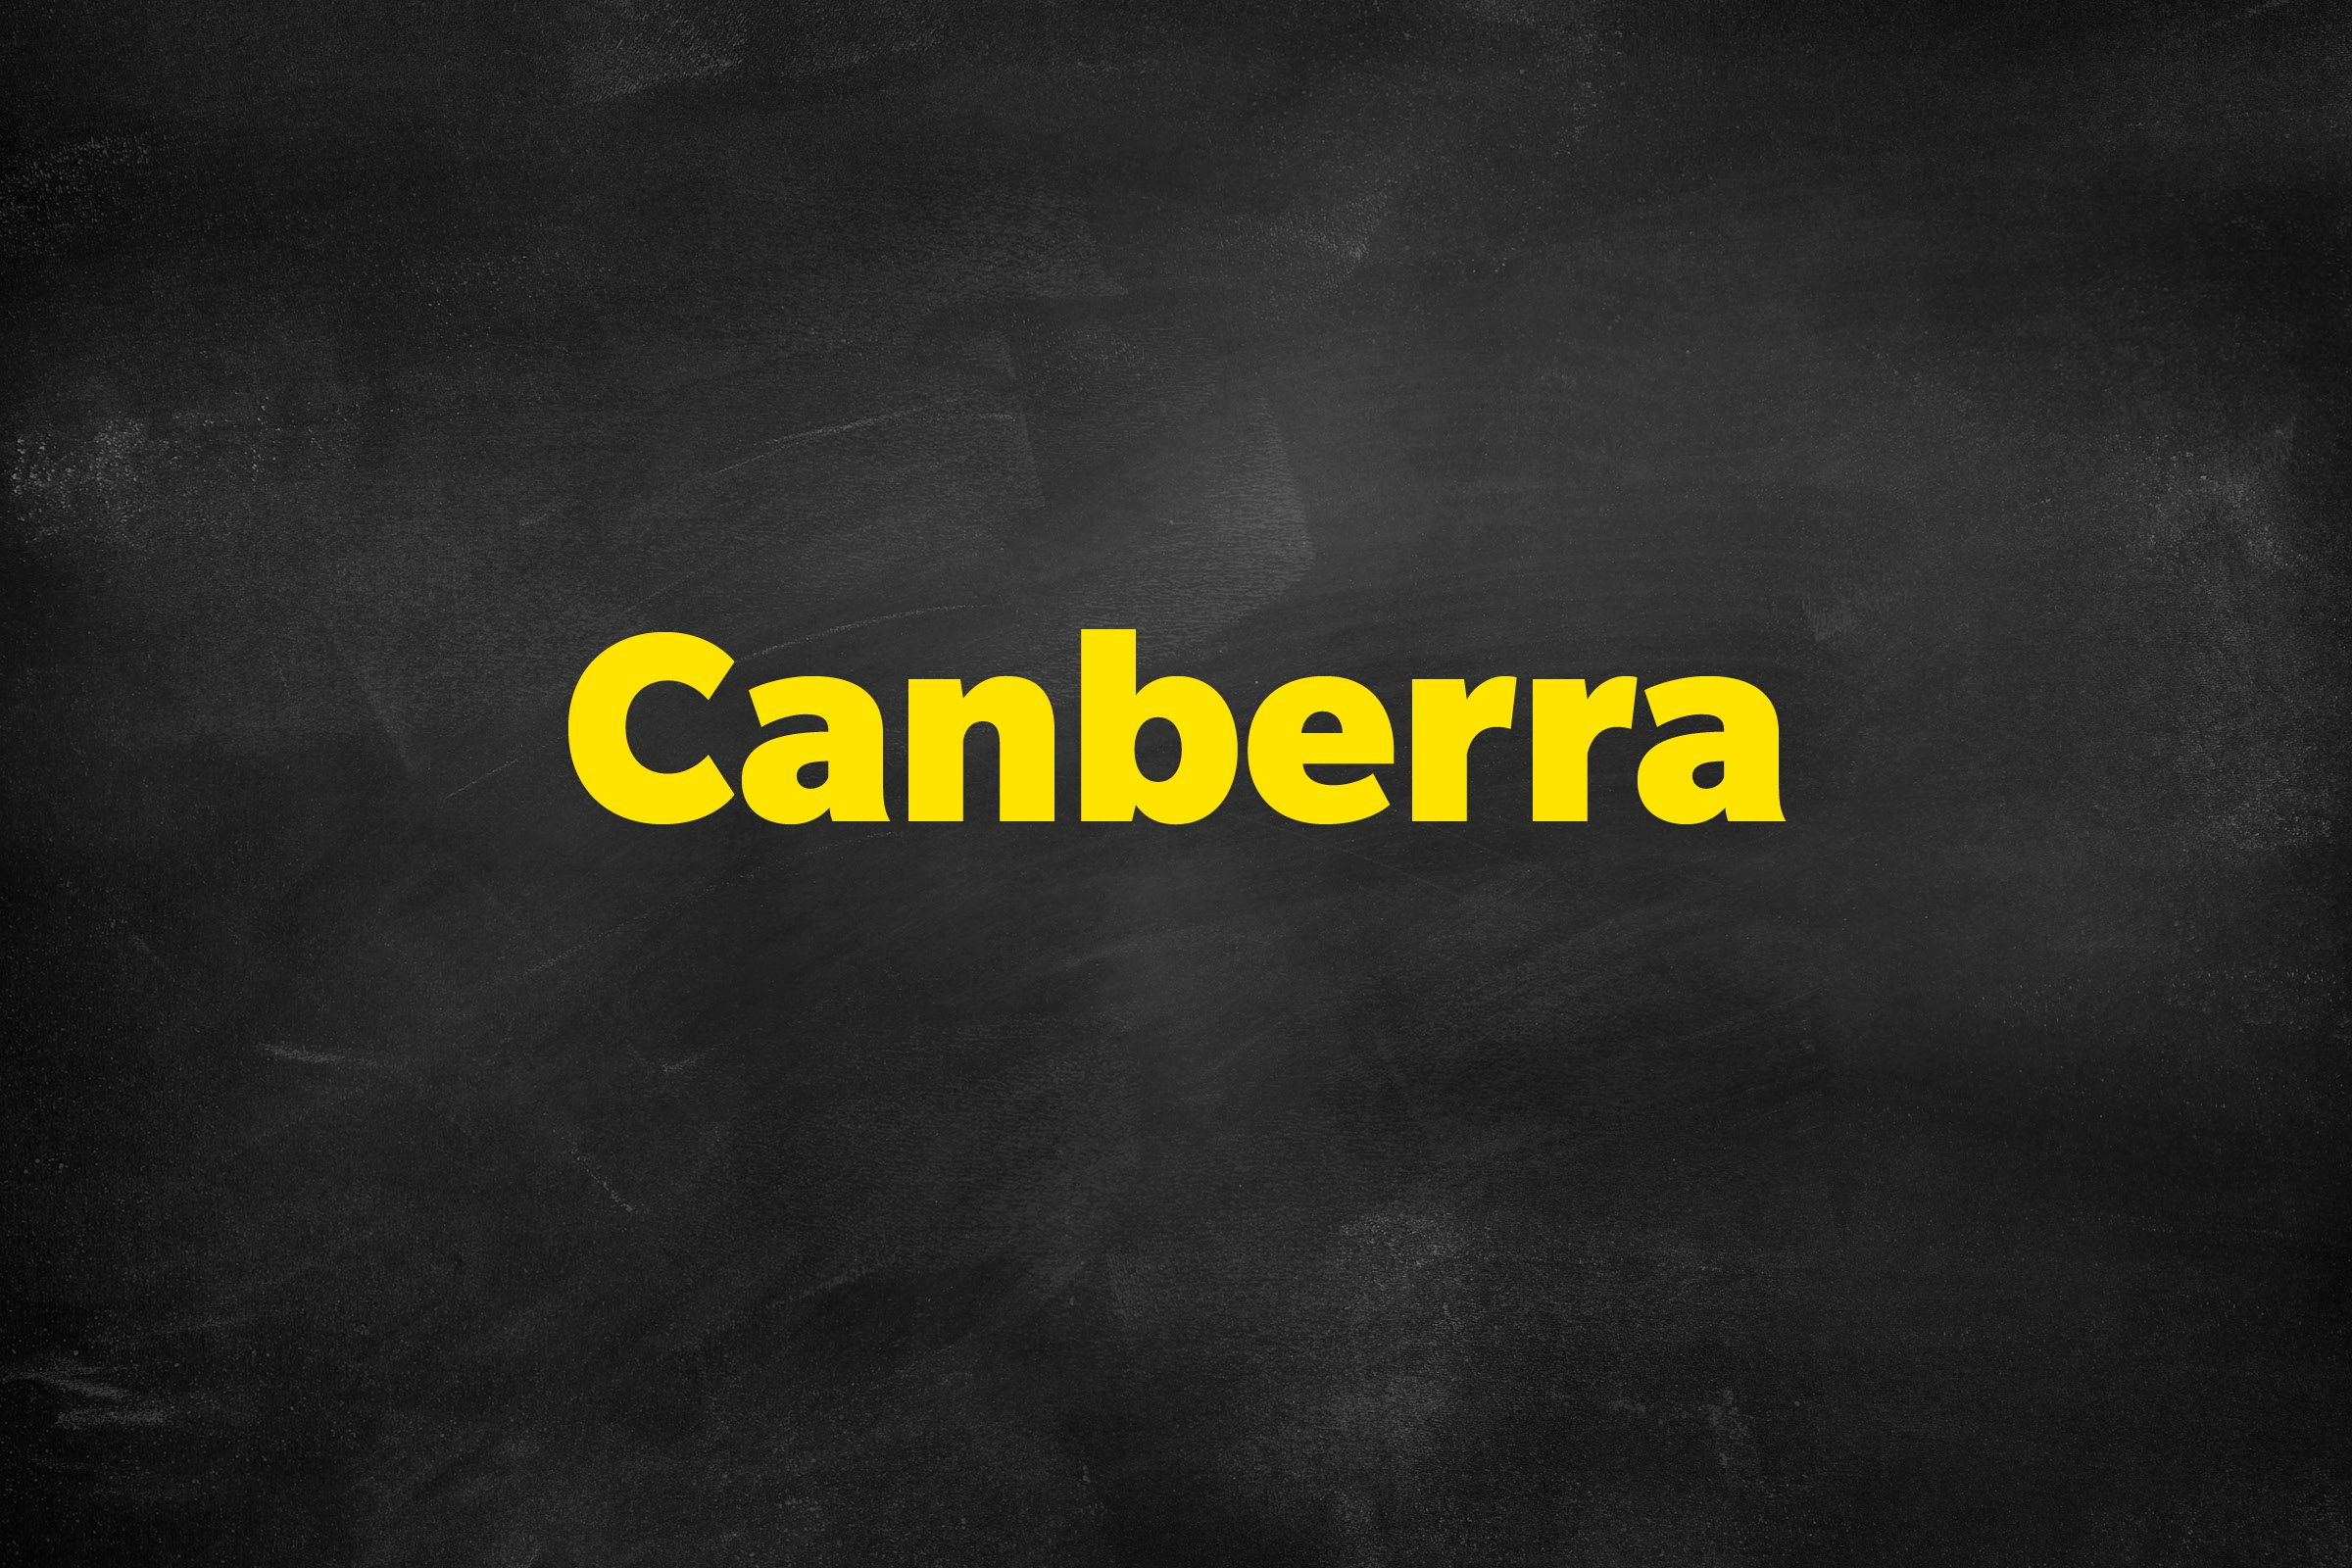 Answer: Canberra